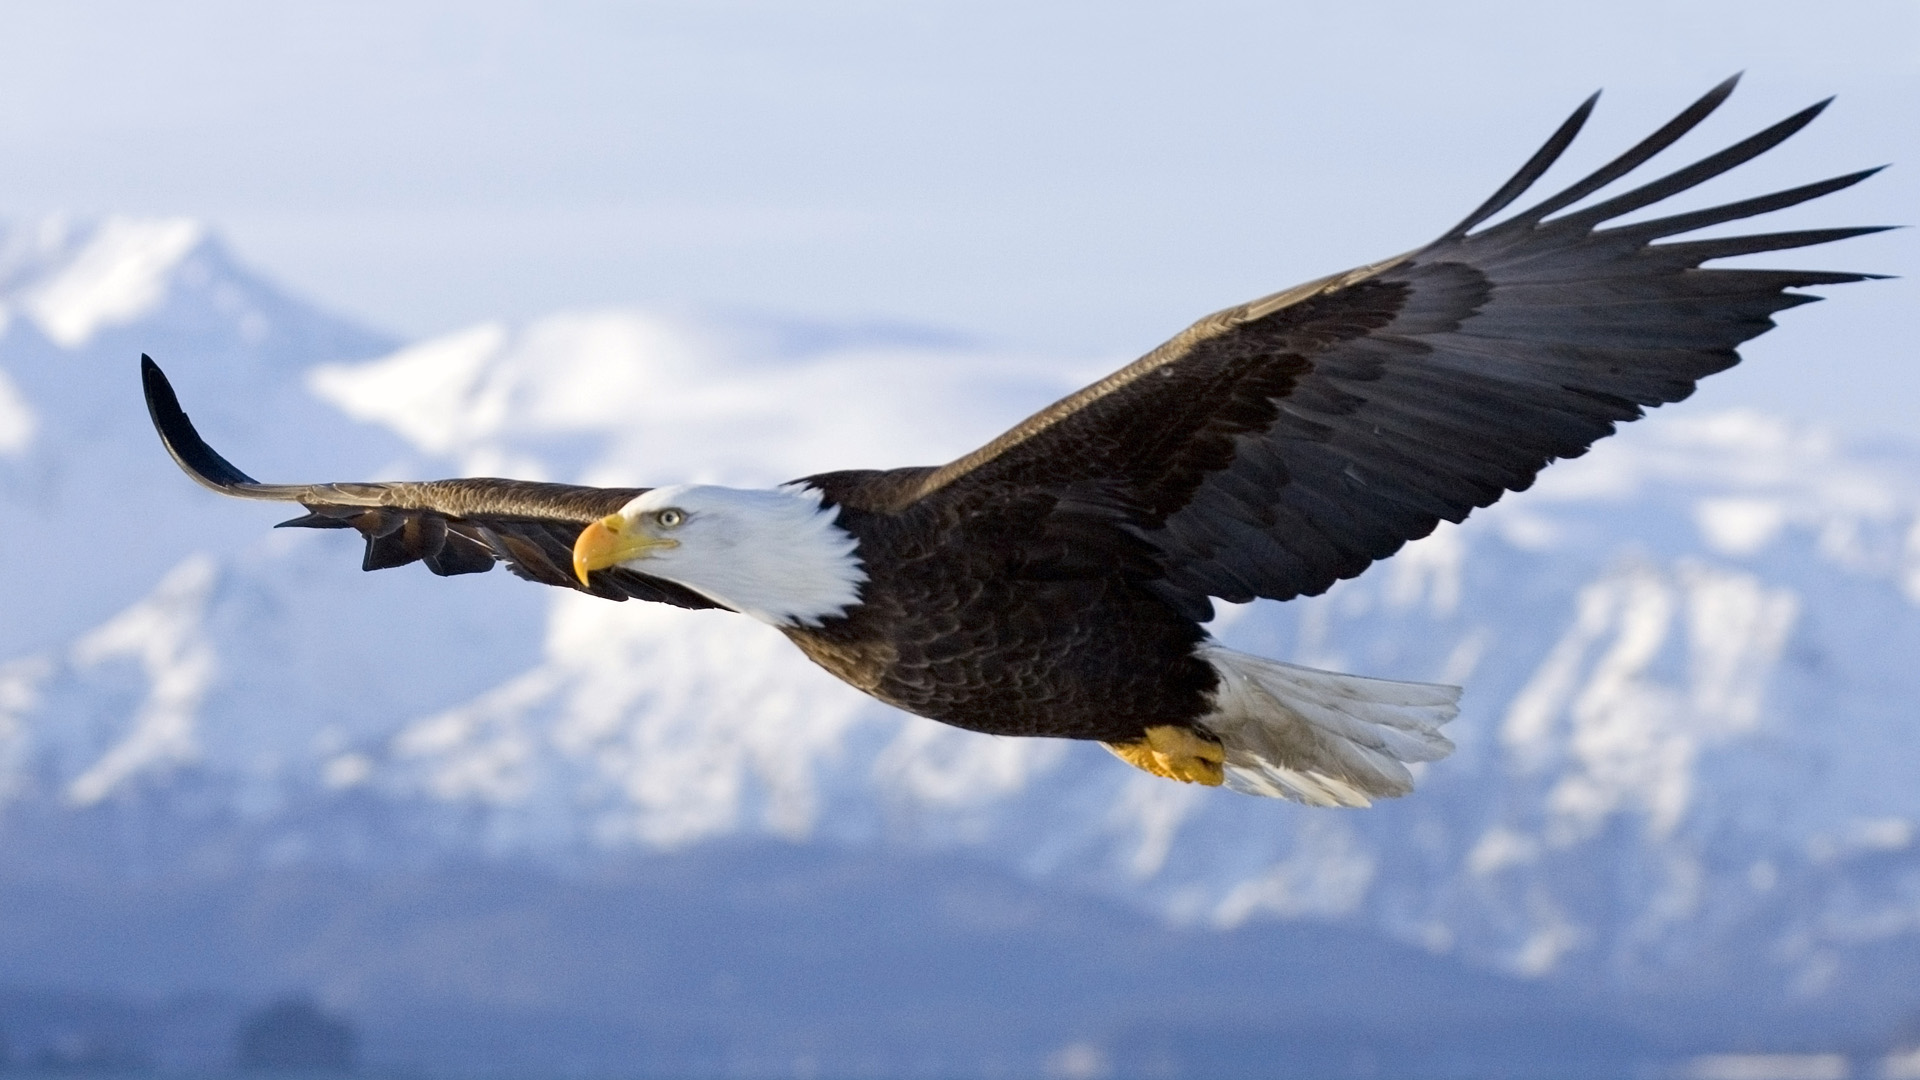 Soaring Wallpaper HD